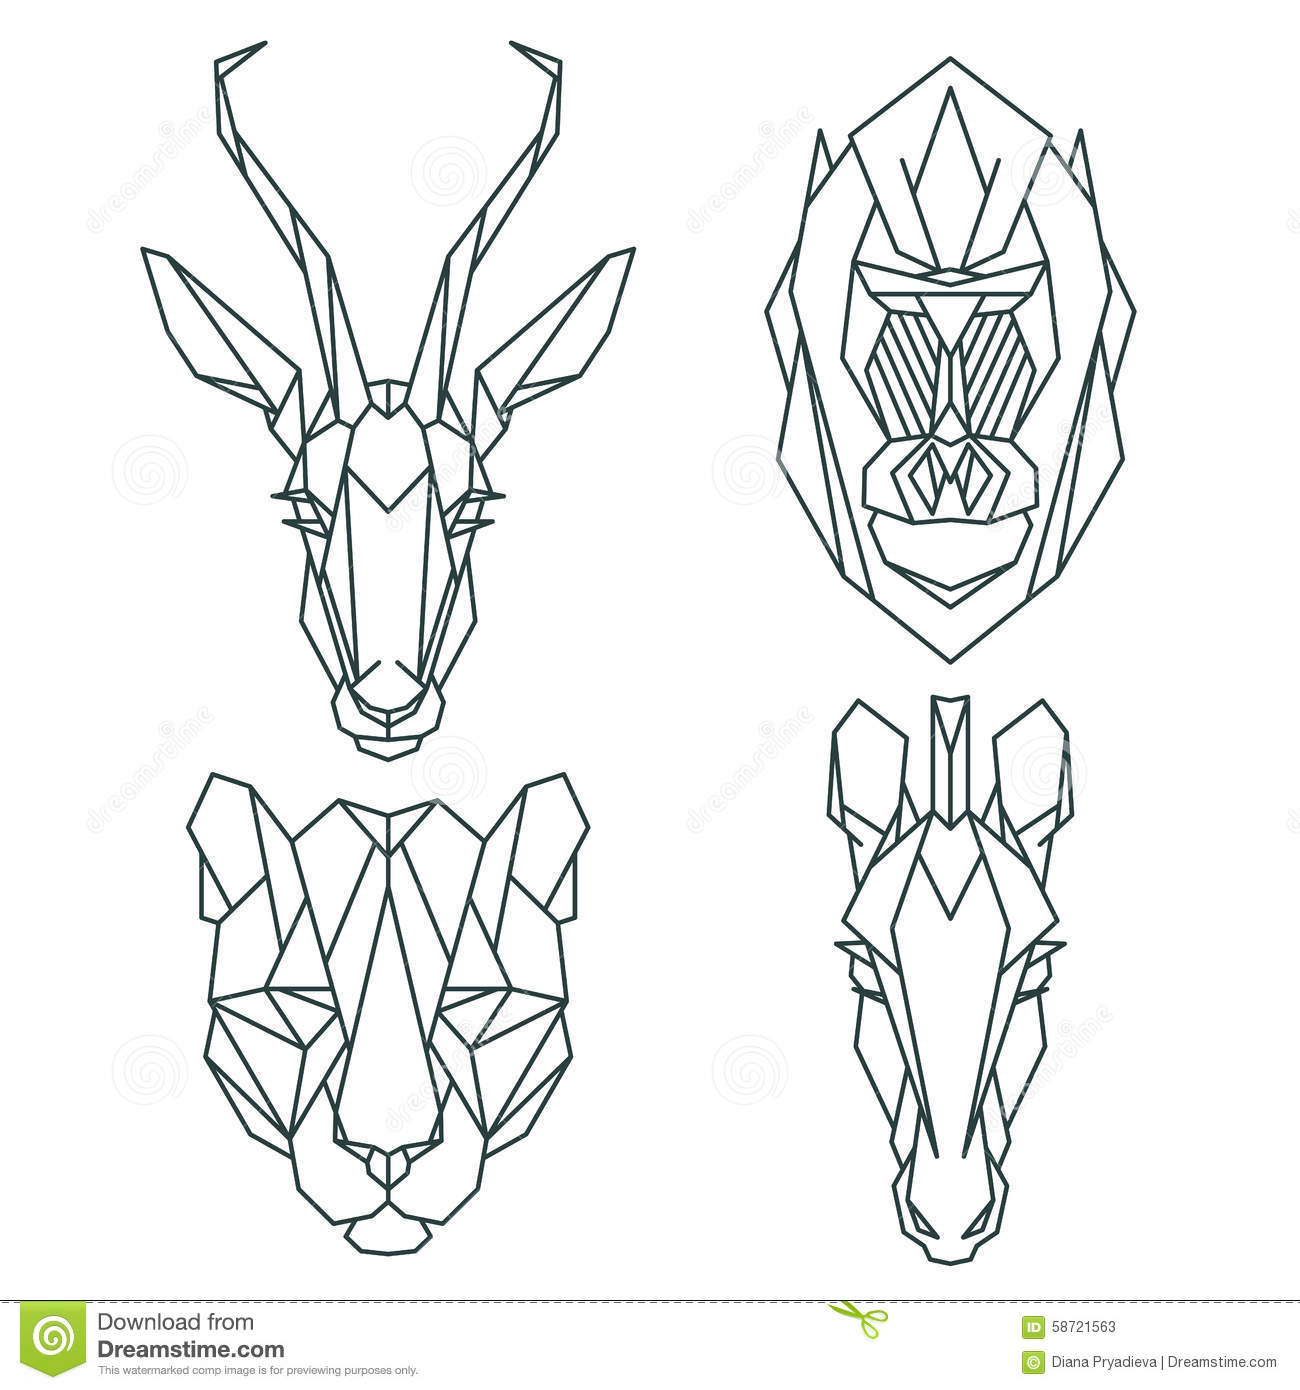 Straight Line Art Tutorial : African animal icons vector icon set abstract triangular